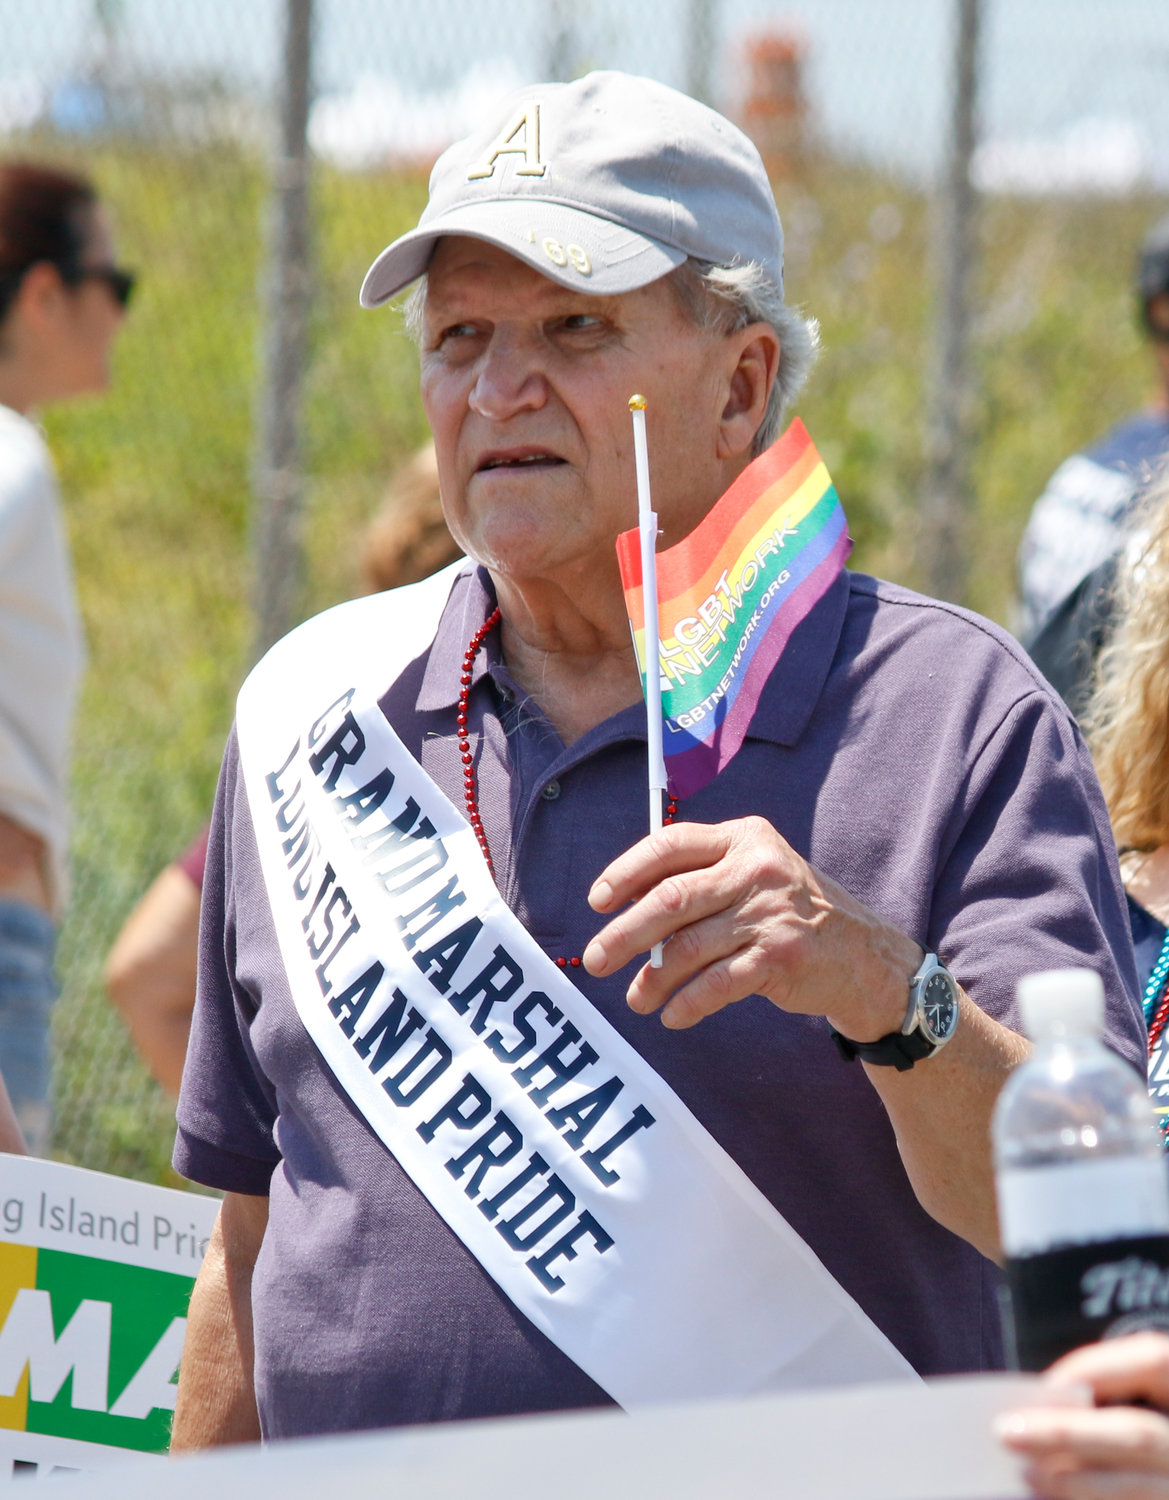 Lucian Truscott, an activist and veteran of the Stonewall Inn uprising, was one of the parade's grand marshals.